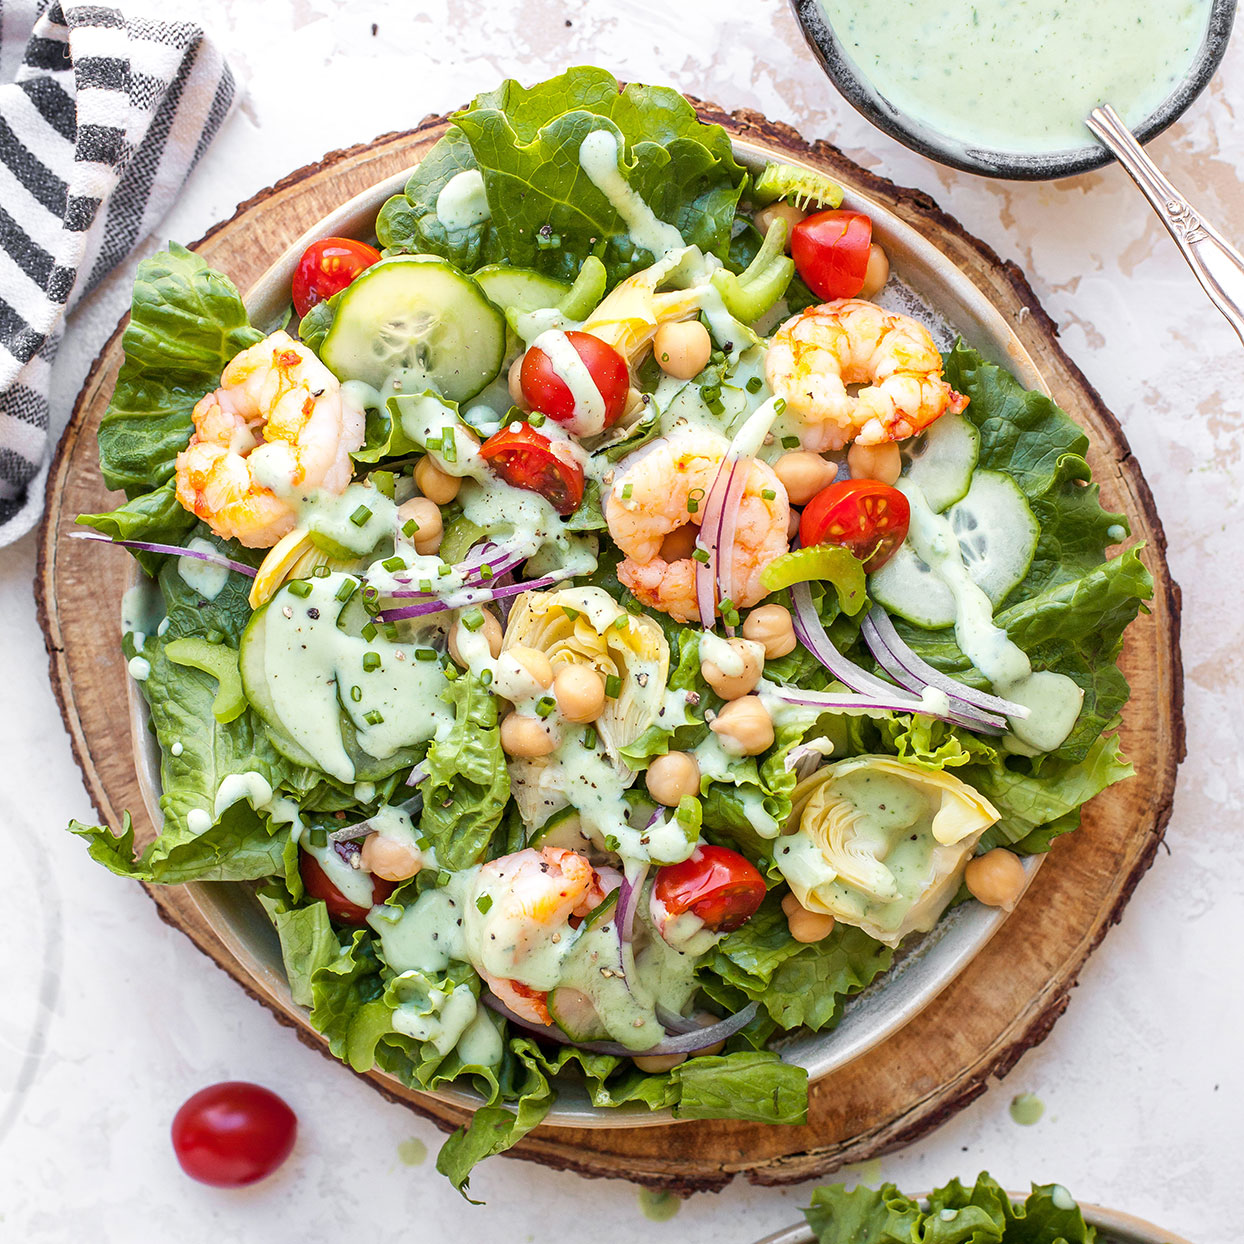 Green Goddess Salad Trusted Brands